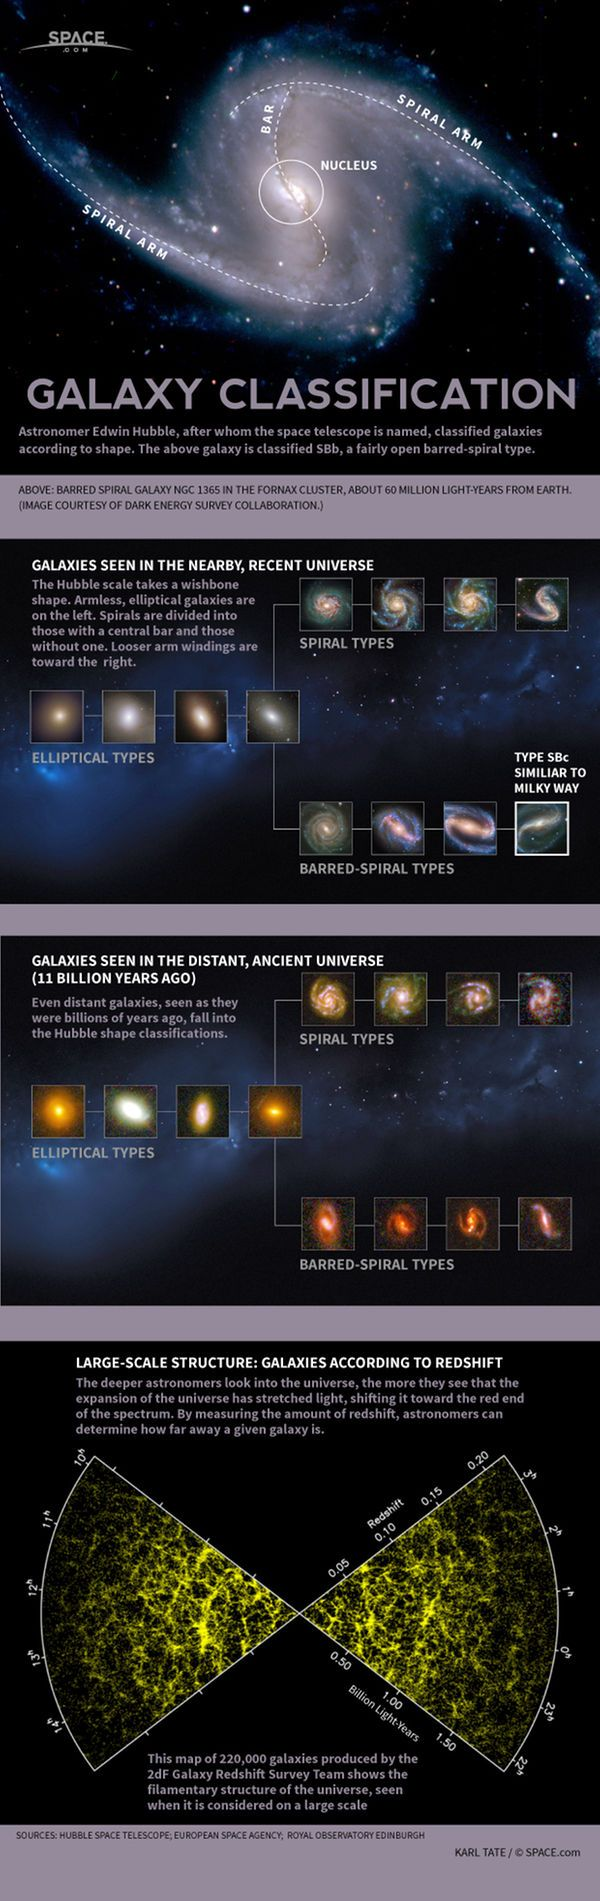 How Galaxies are Classified by Type (Infographic)